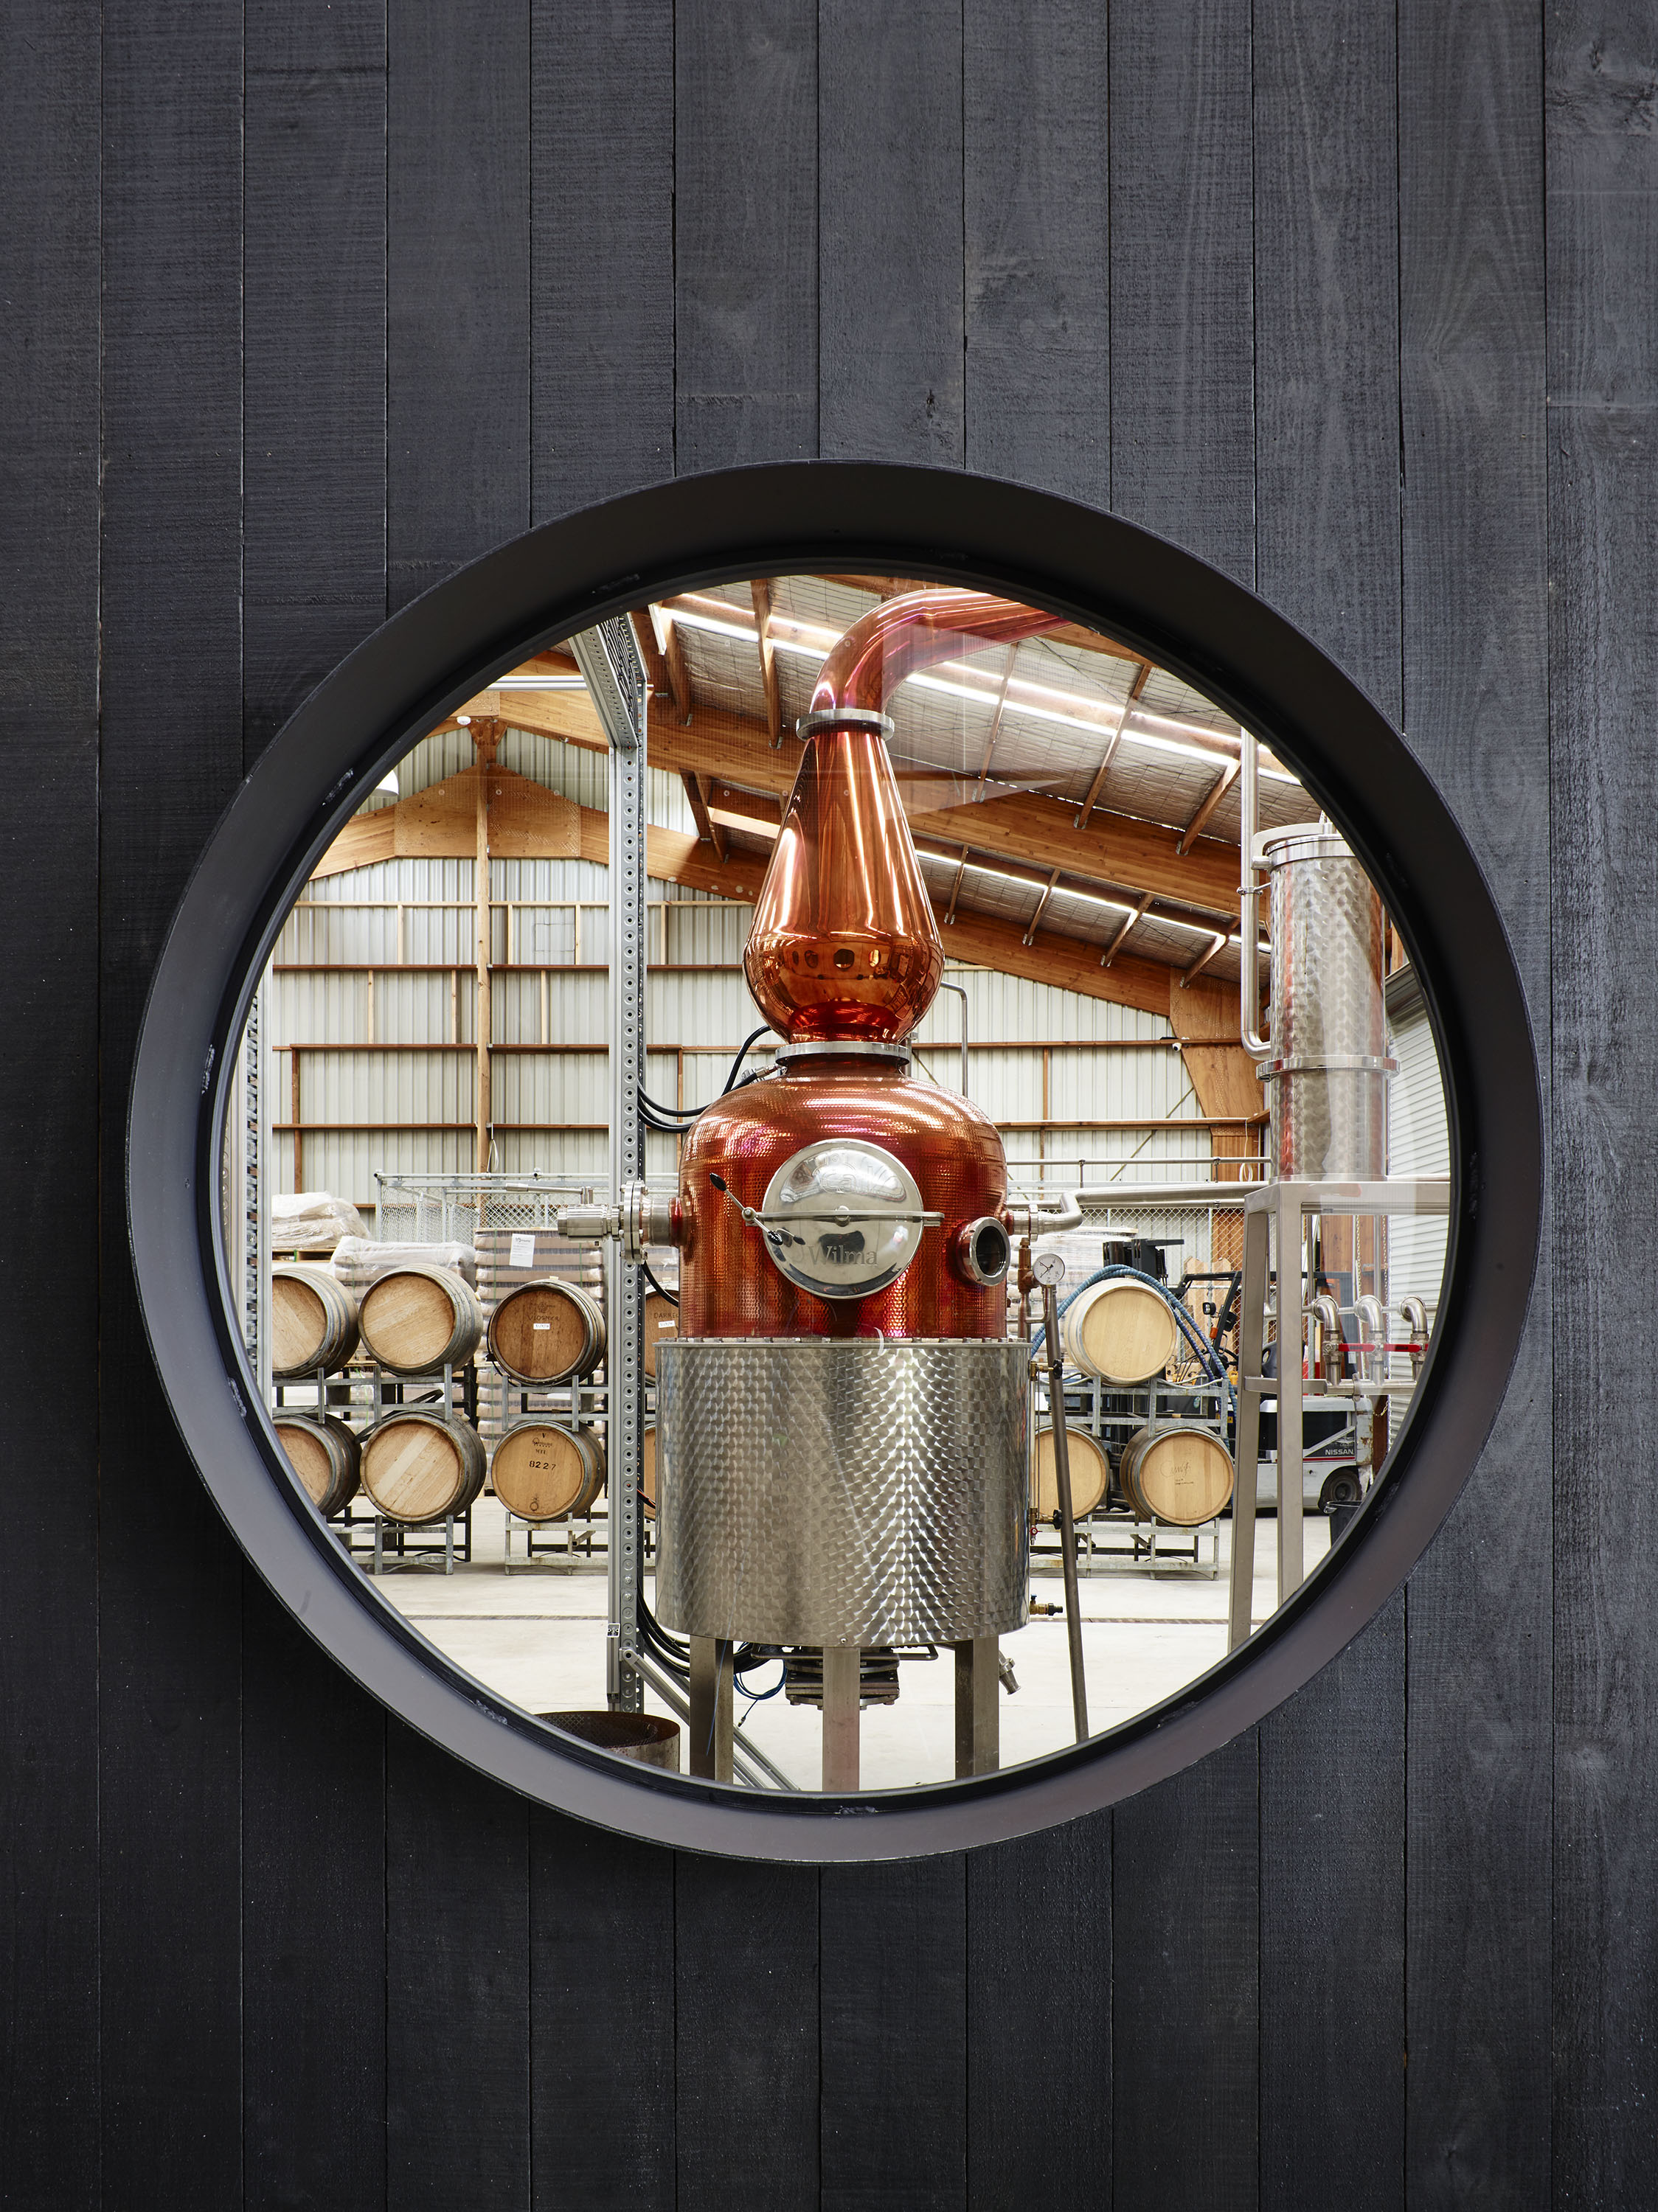 Four pILLARS gIN ctf cURATED mELBOURNE